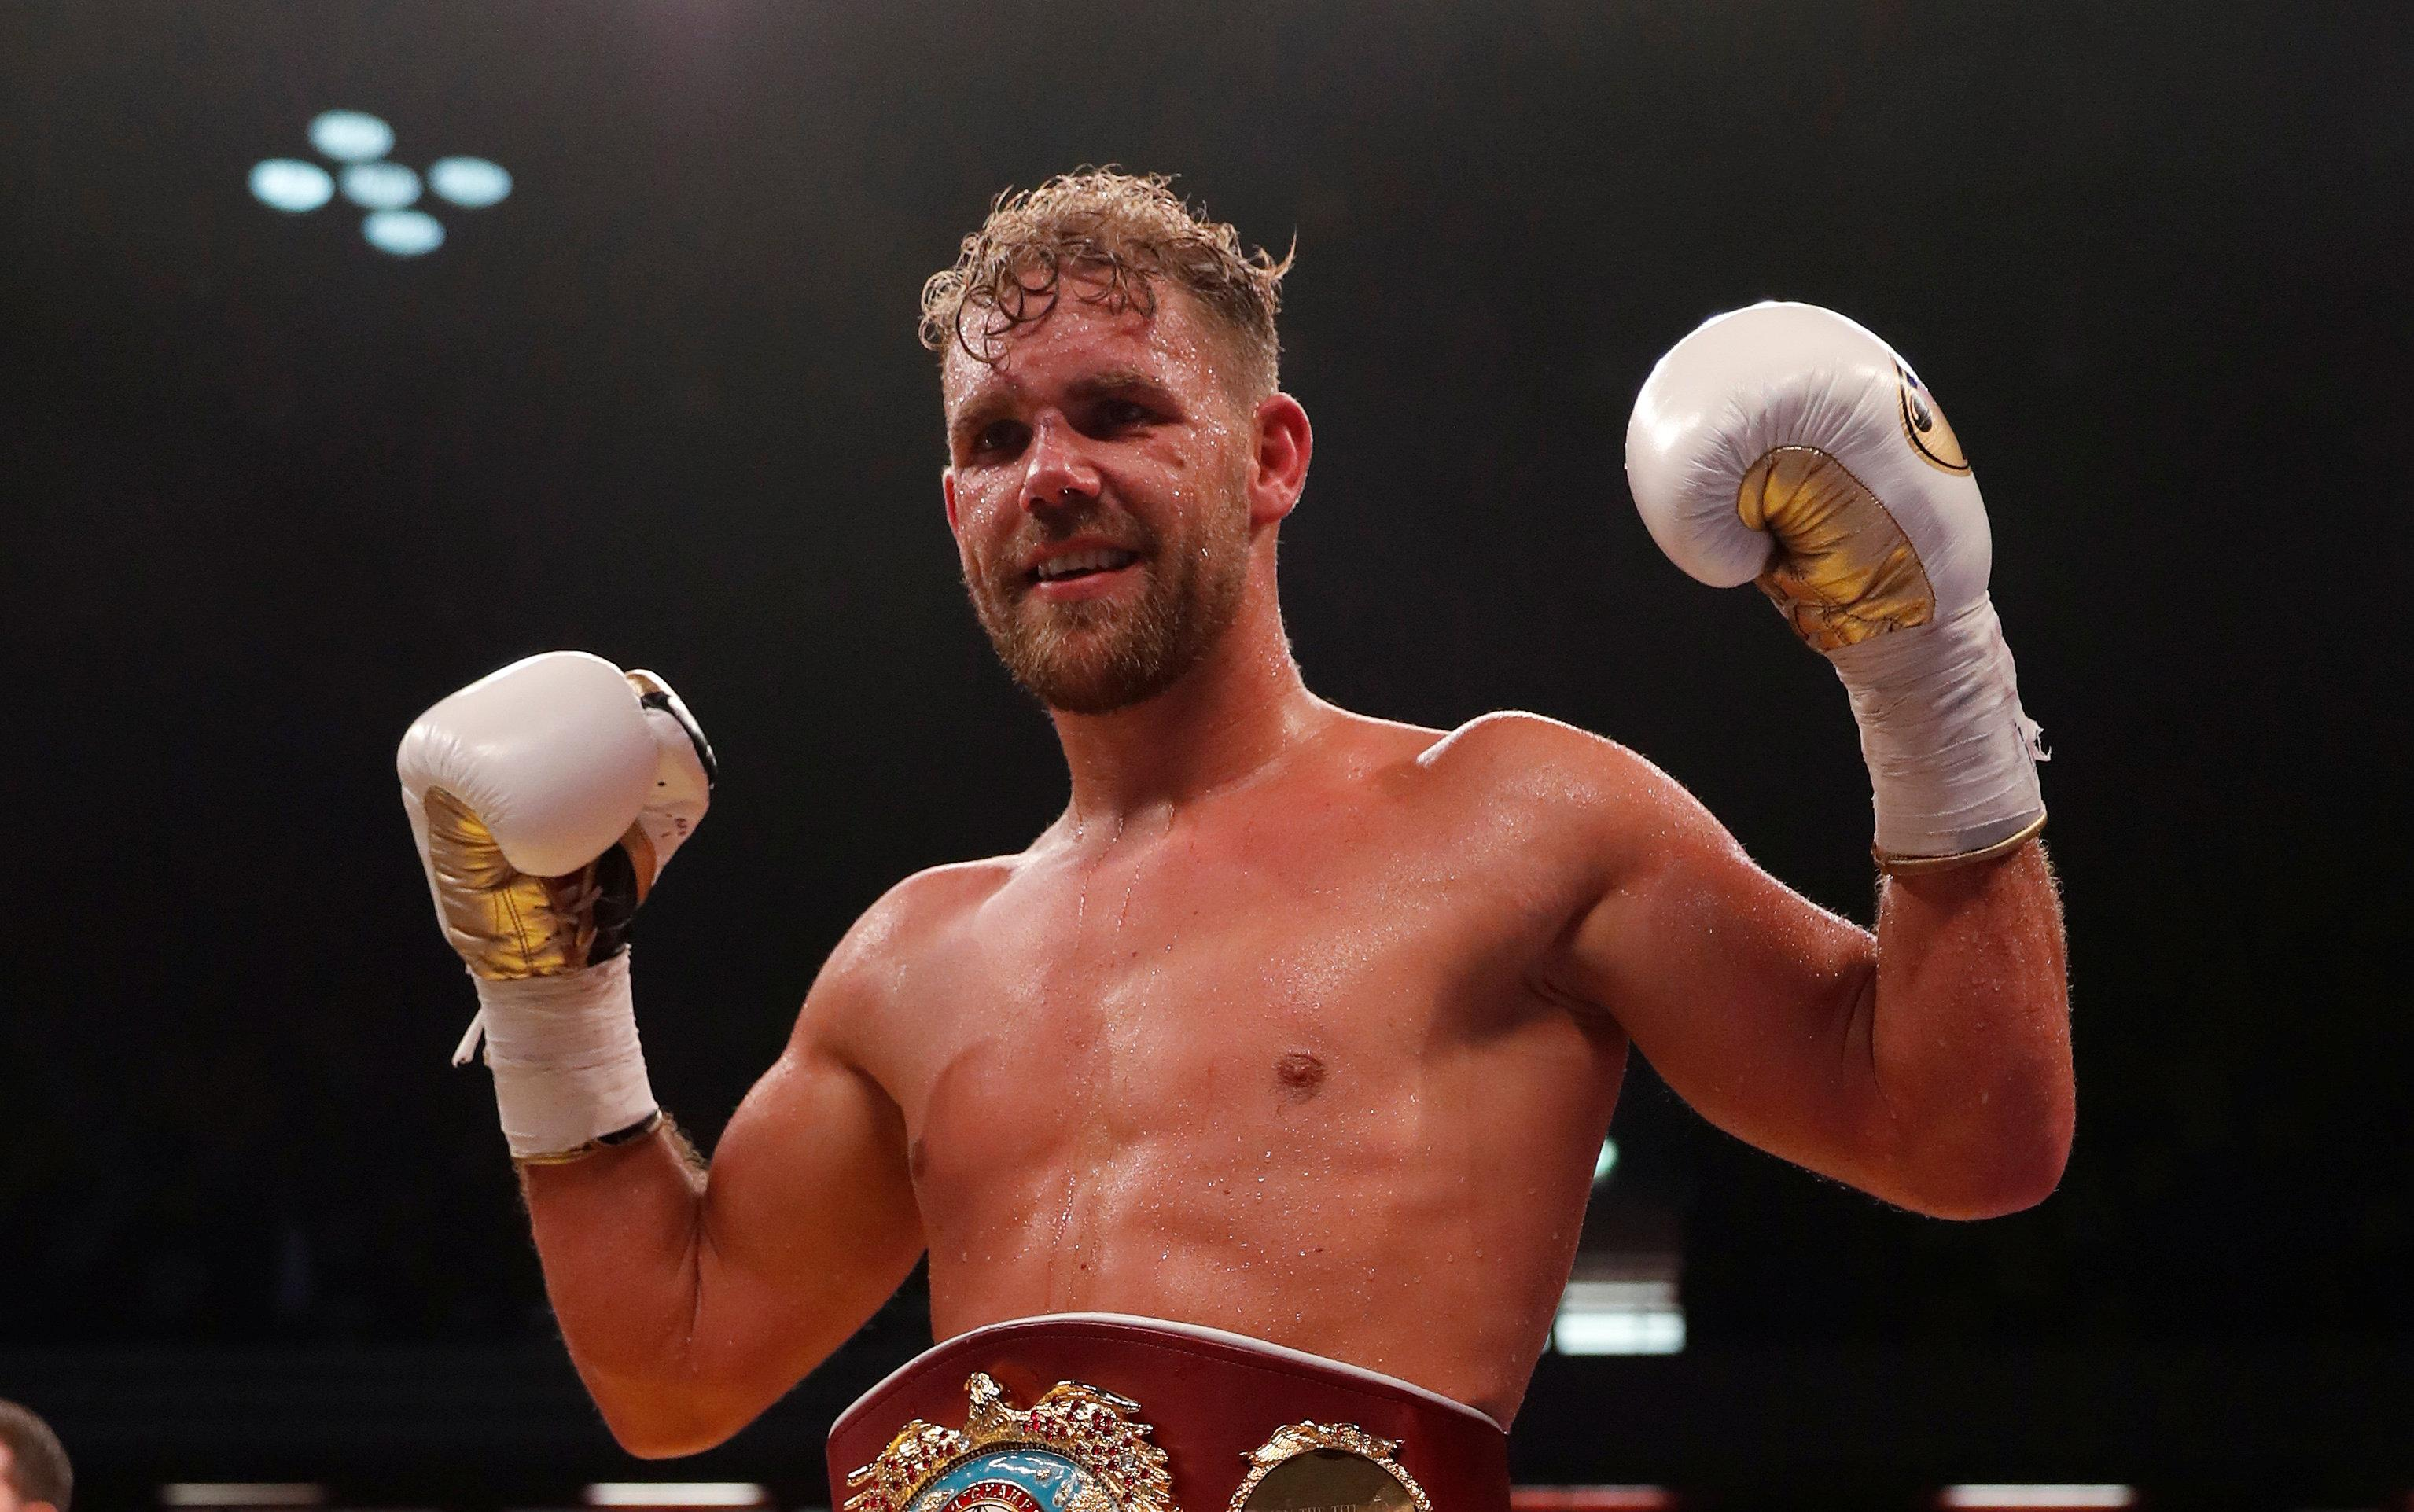 Billy Joe Saunders has pulled out of two world title defences against Martin Murray with injury